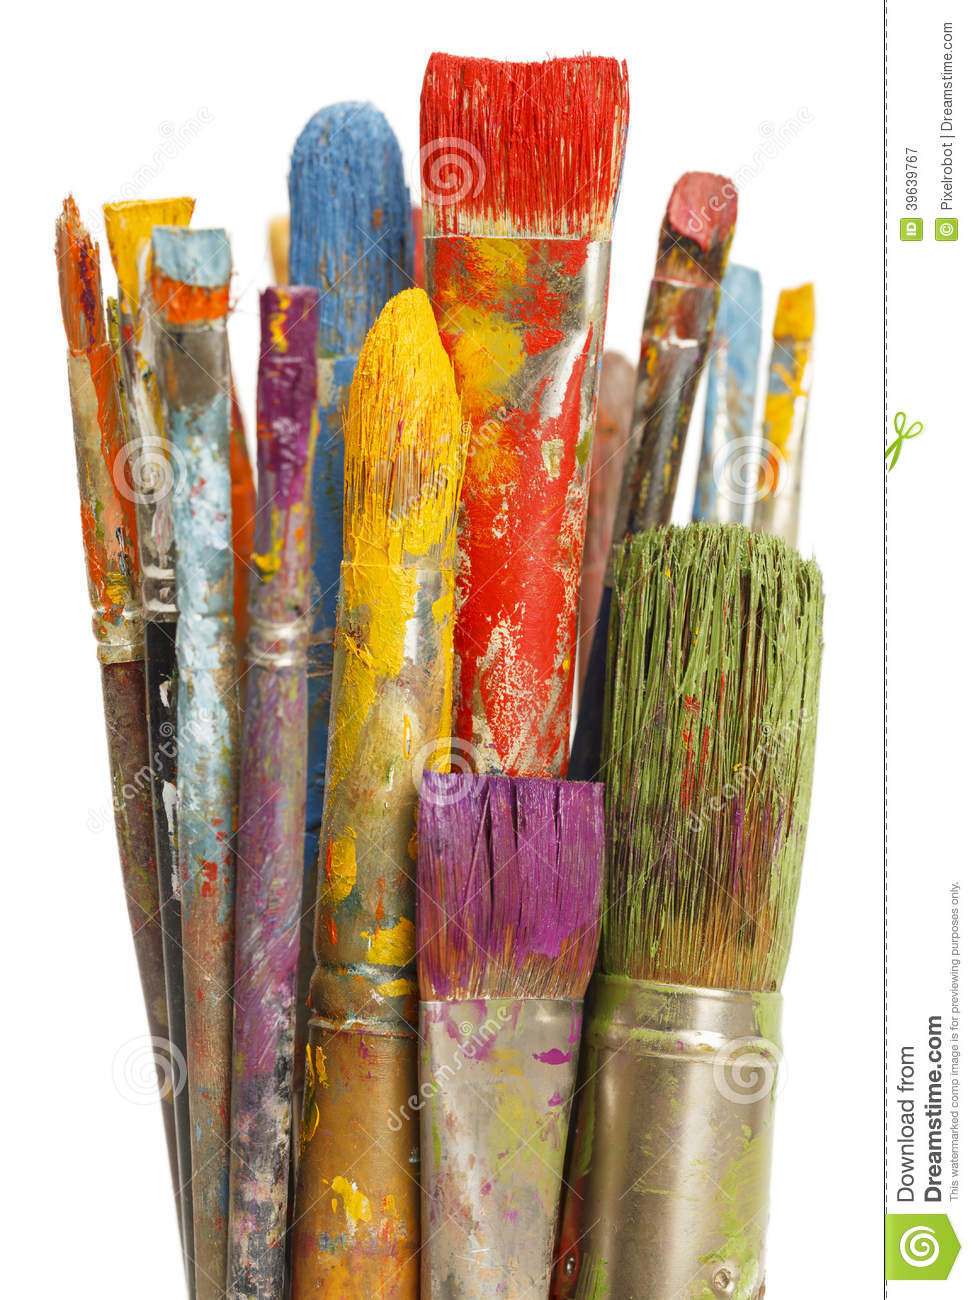 How To Clean Used Paint Brushes